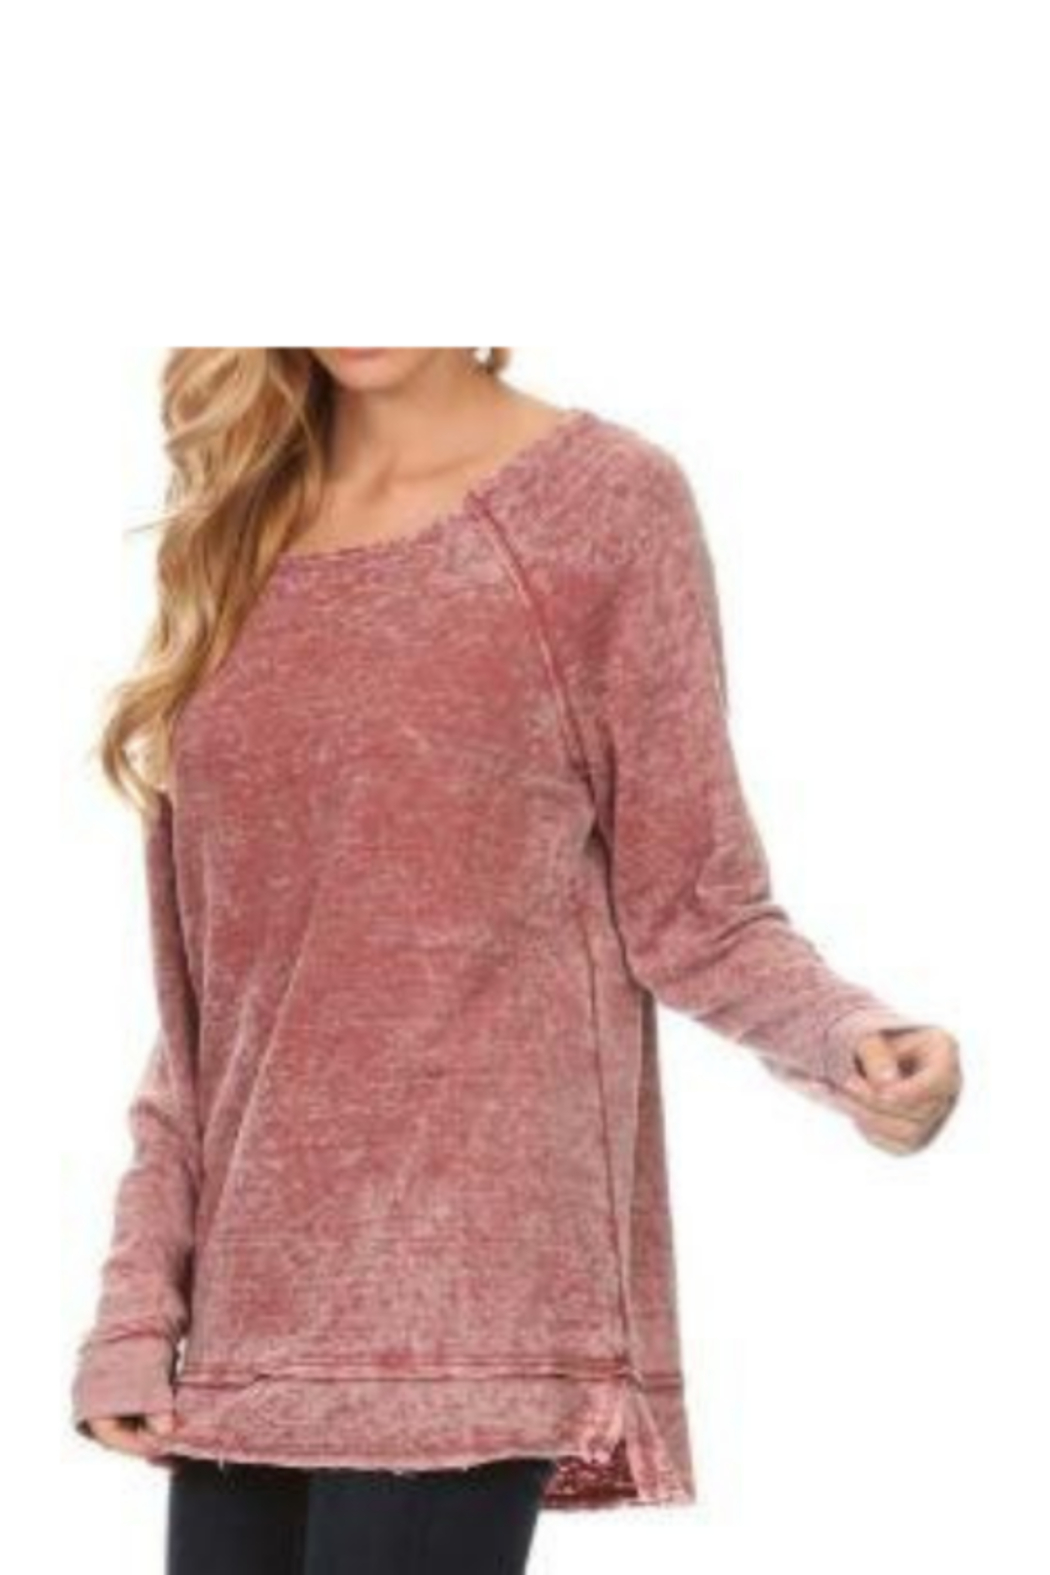 T Party Raw Edge Burn Out Tunic Knit Top - Main Image